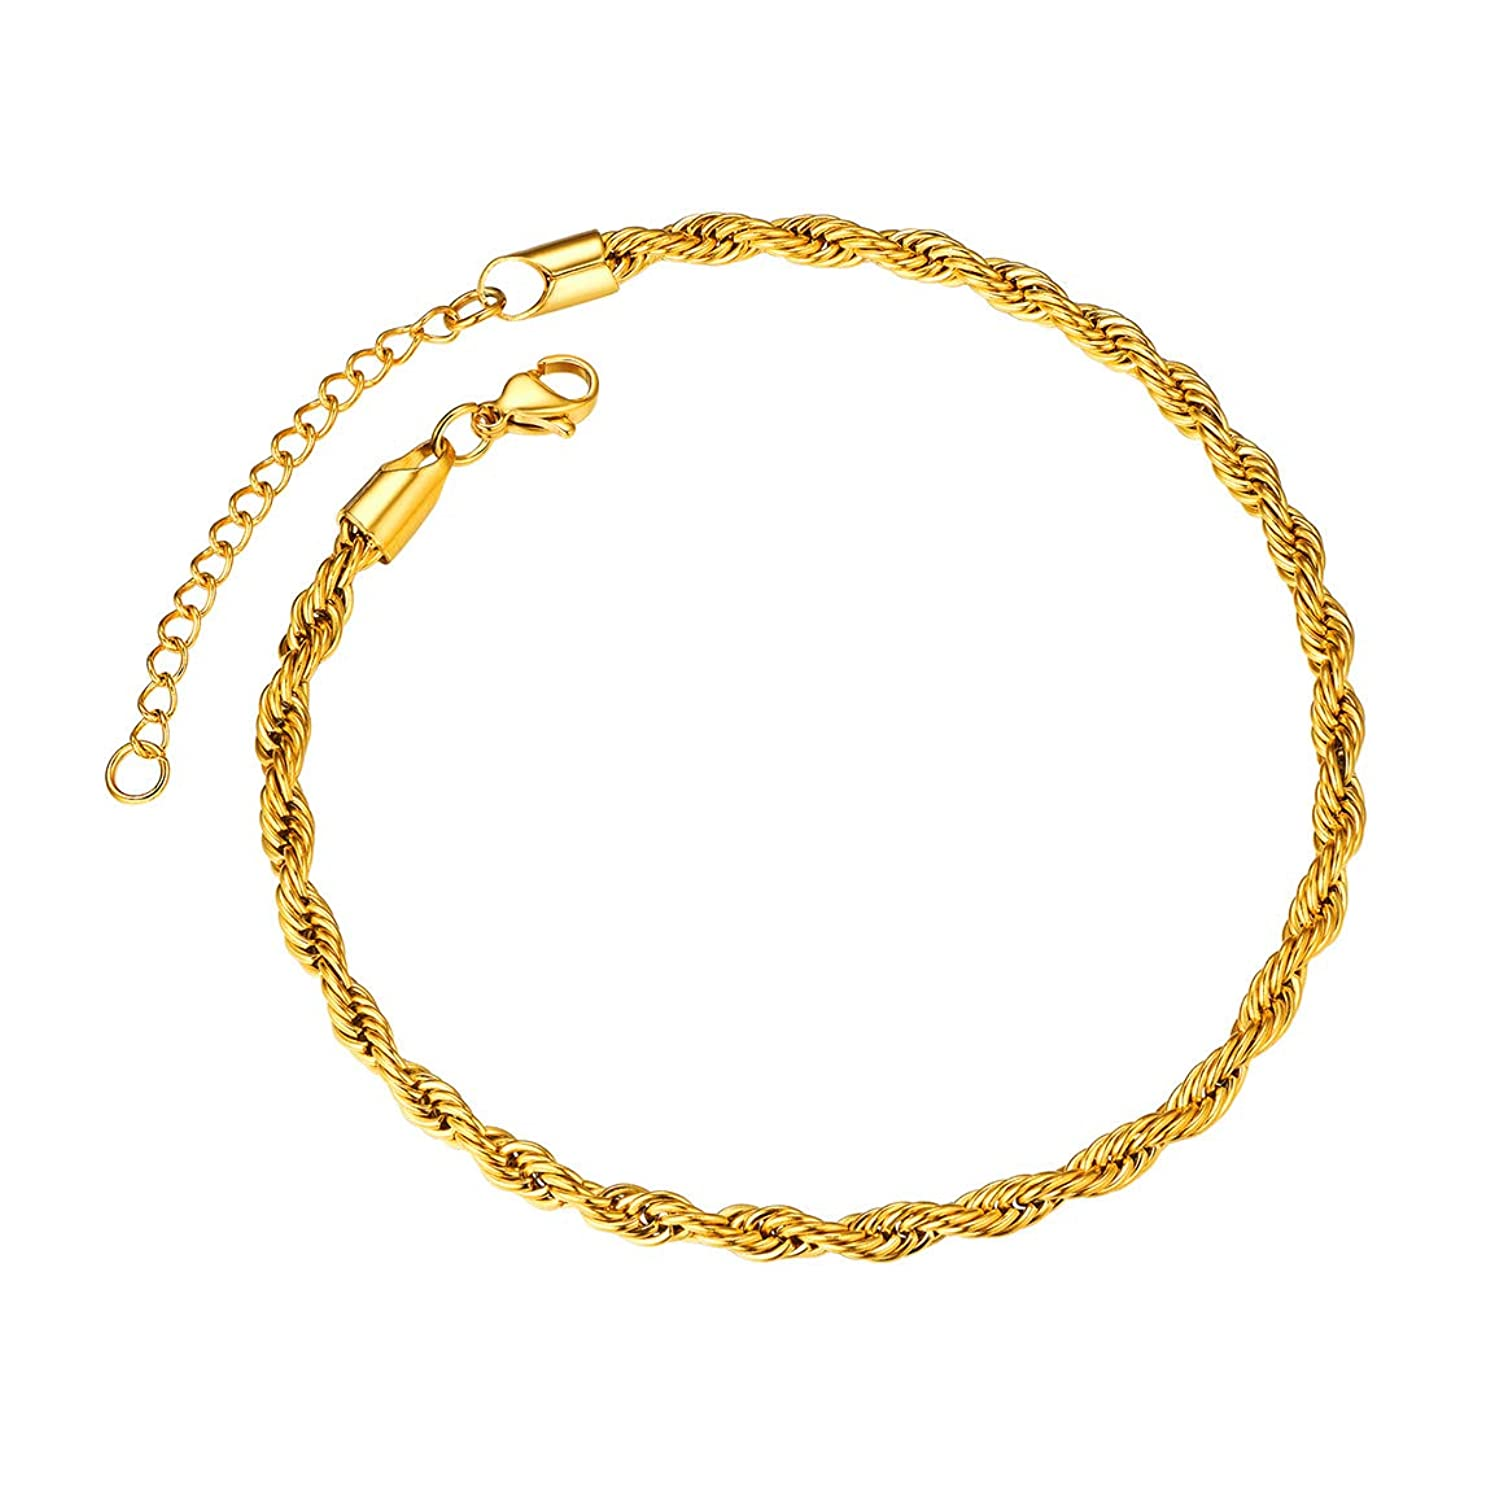 ChainsPro Cuban Chain Ankle Bracelet for Women Men, Beautiful Summer Beach Jewelry-Strong with Good Clasp-18K Gold Plated(Send Gift Box)